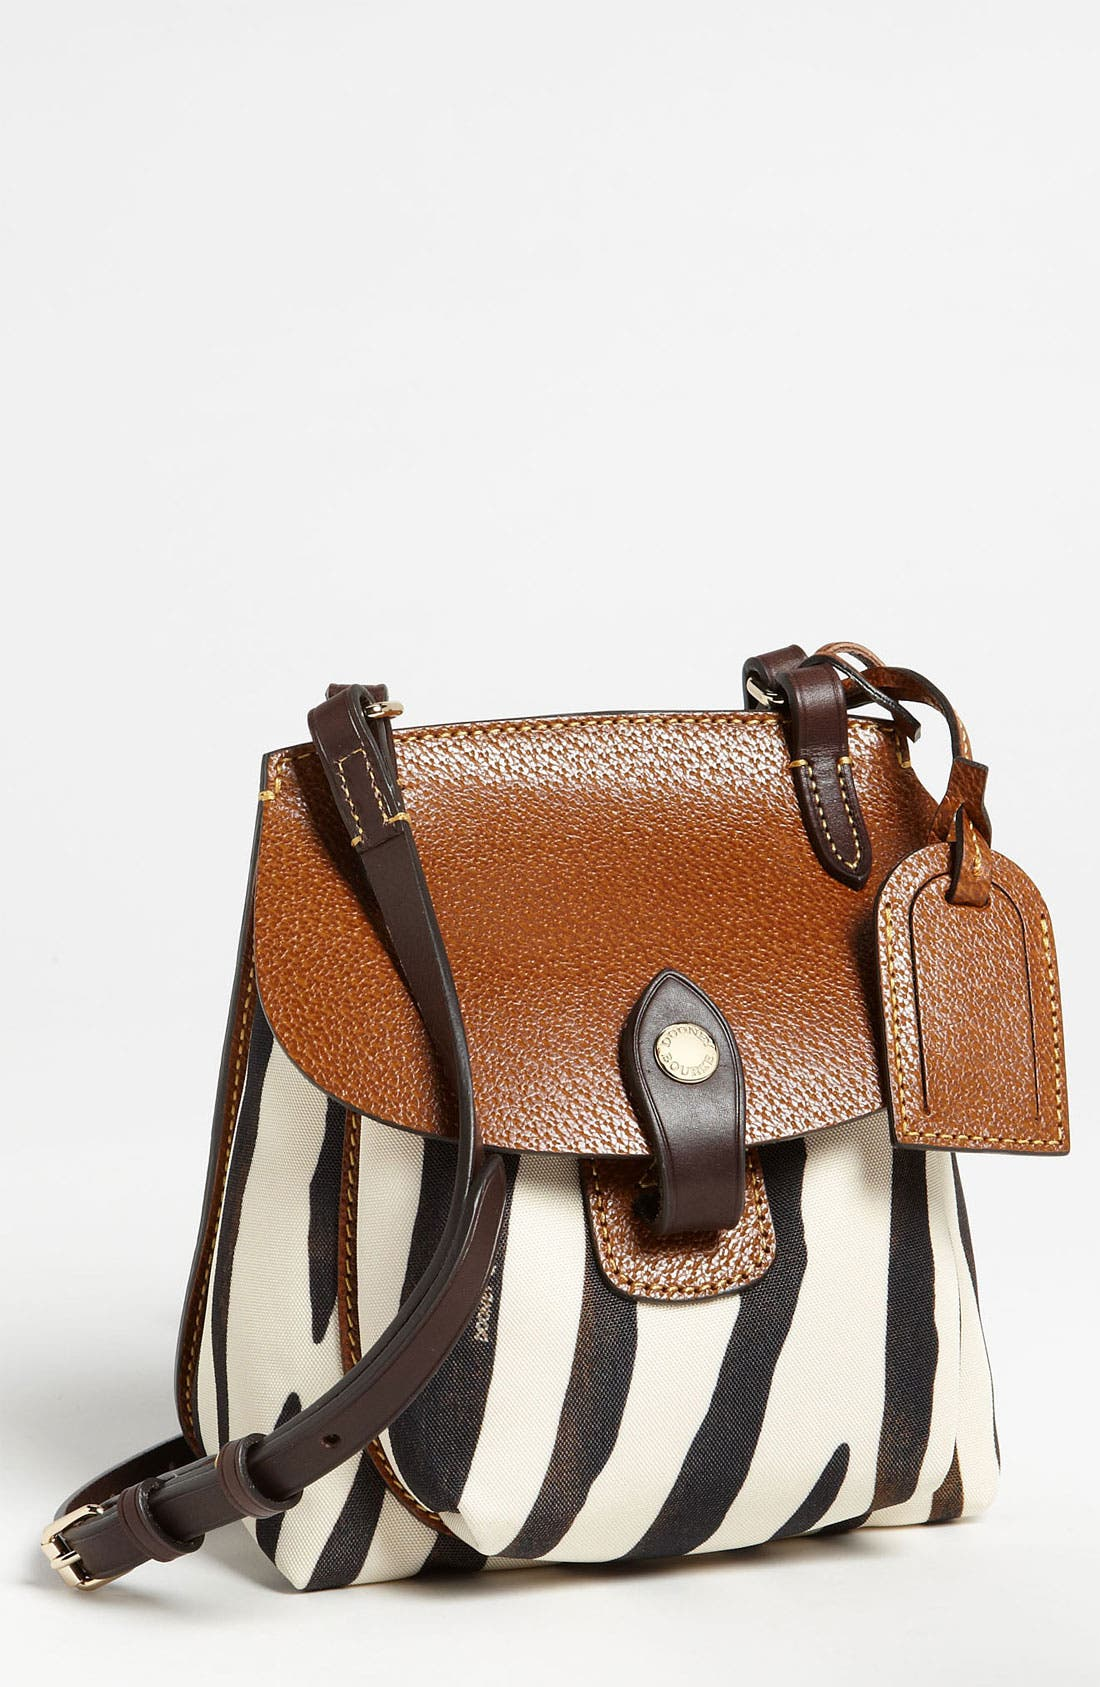 Alternate Image 1 Selected - Dooney & Bourke 'Pocket - Mini' Crossbody Bag